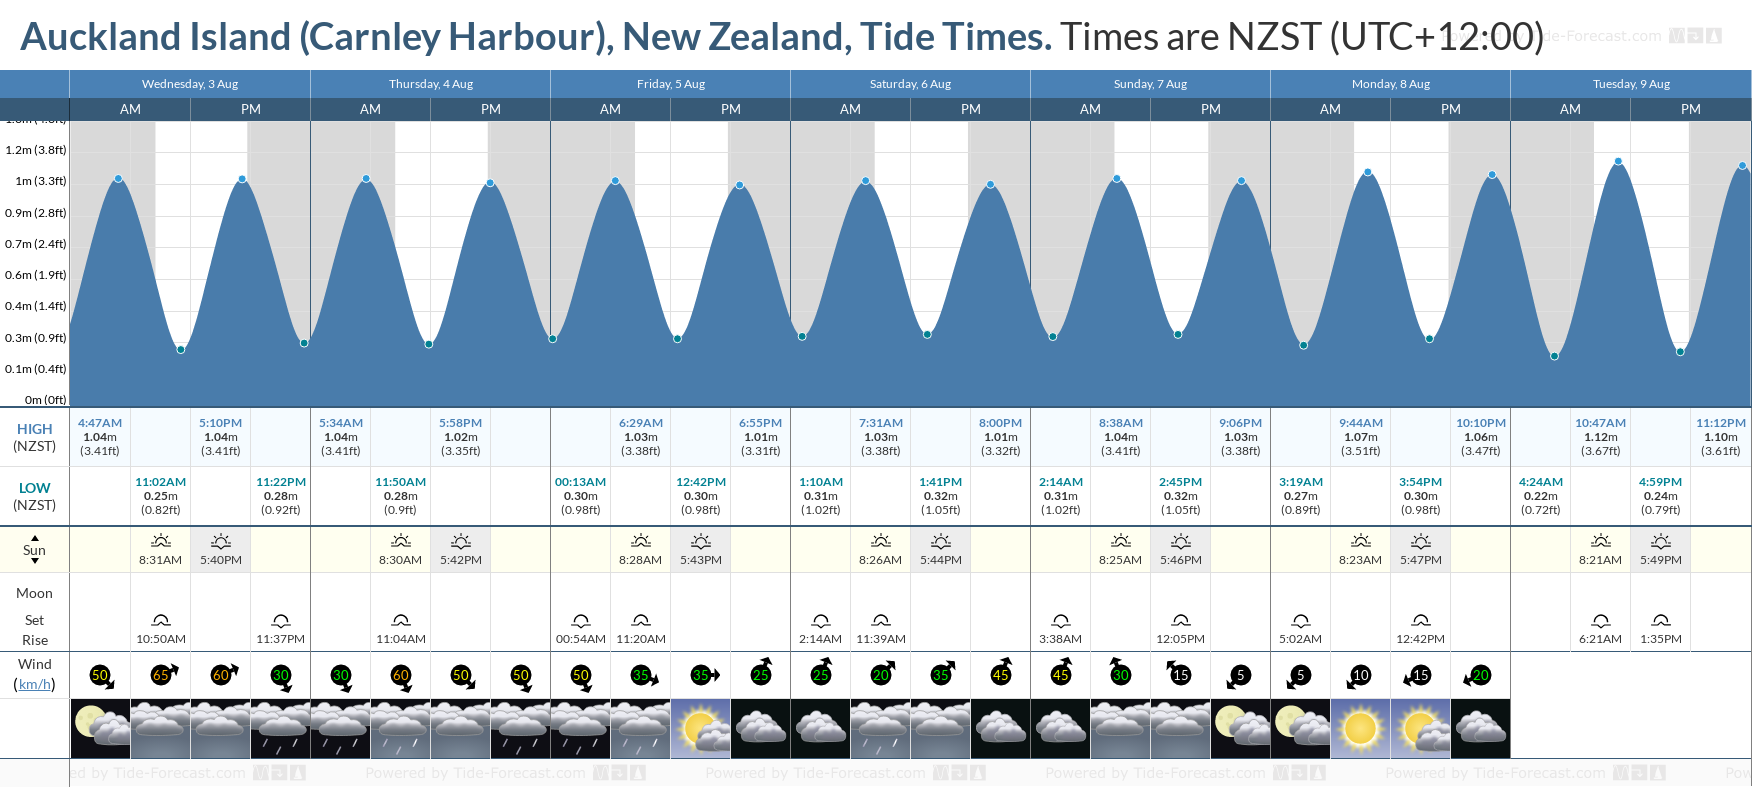 Auckland Island (Carnley Harbour), New Zealand Tide Chart including high and low tide tide times for the next 7 days